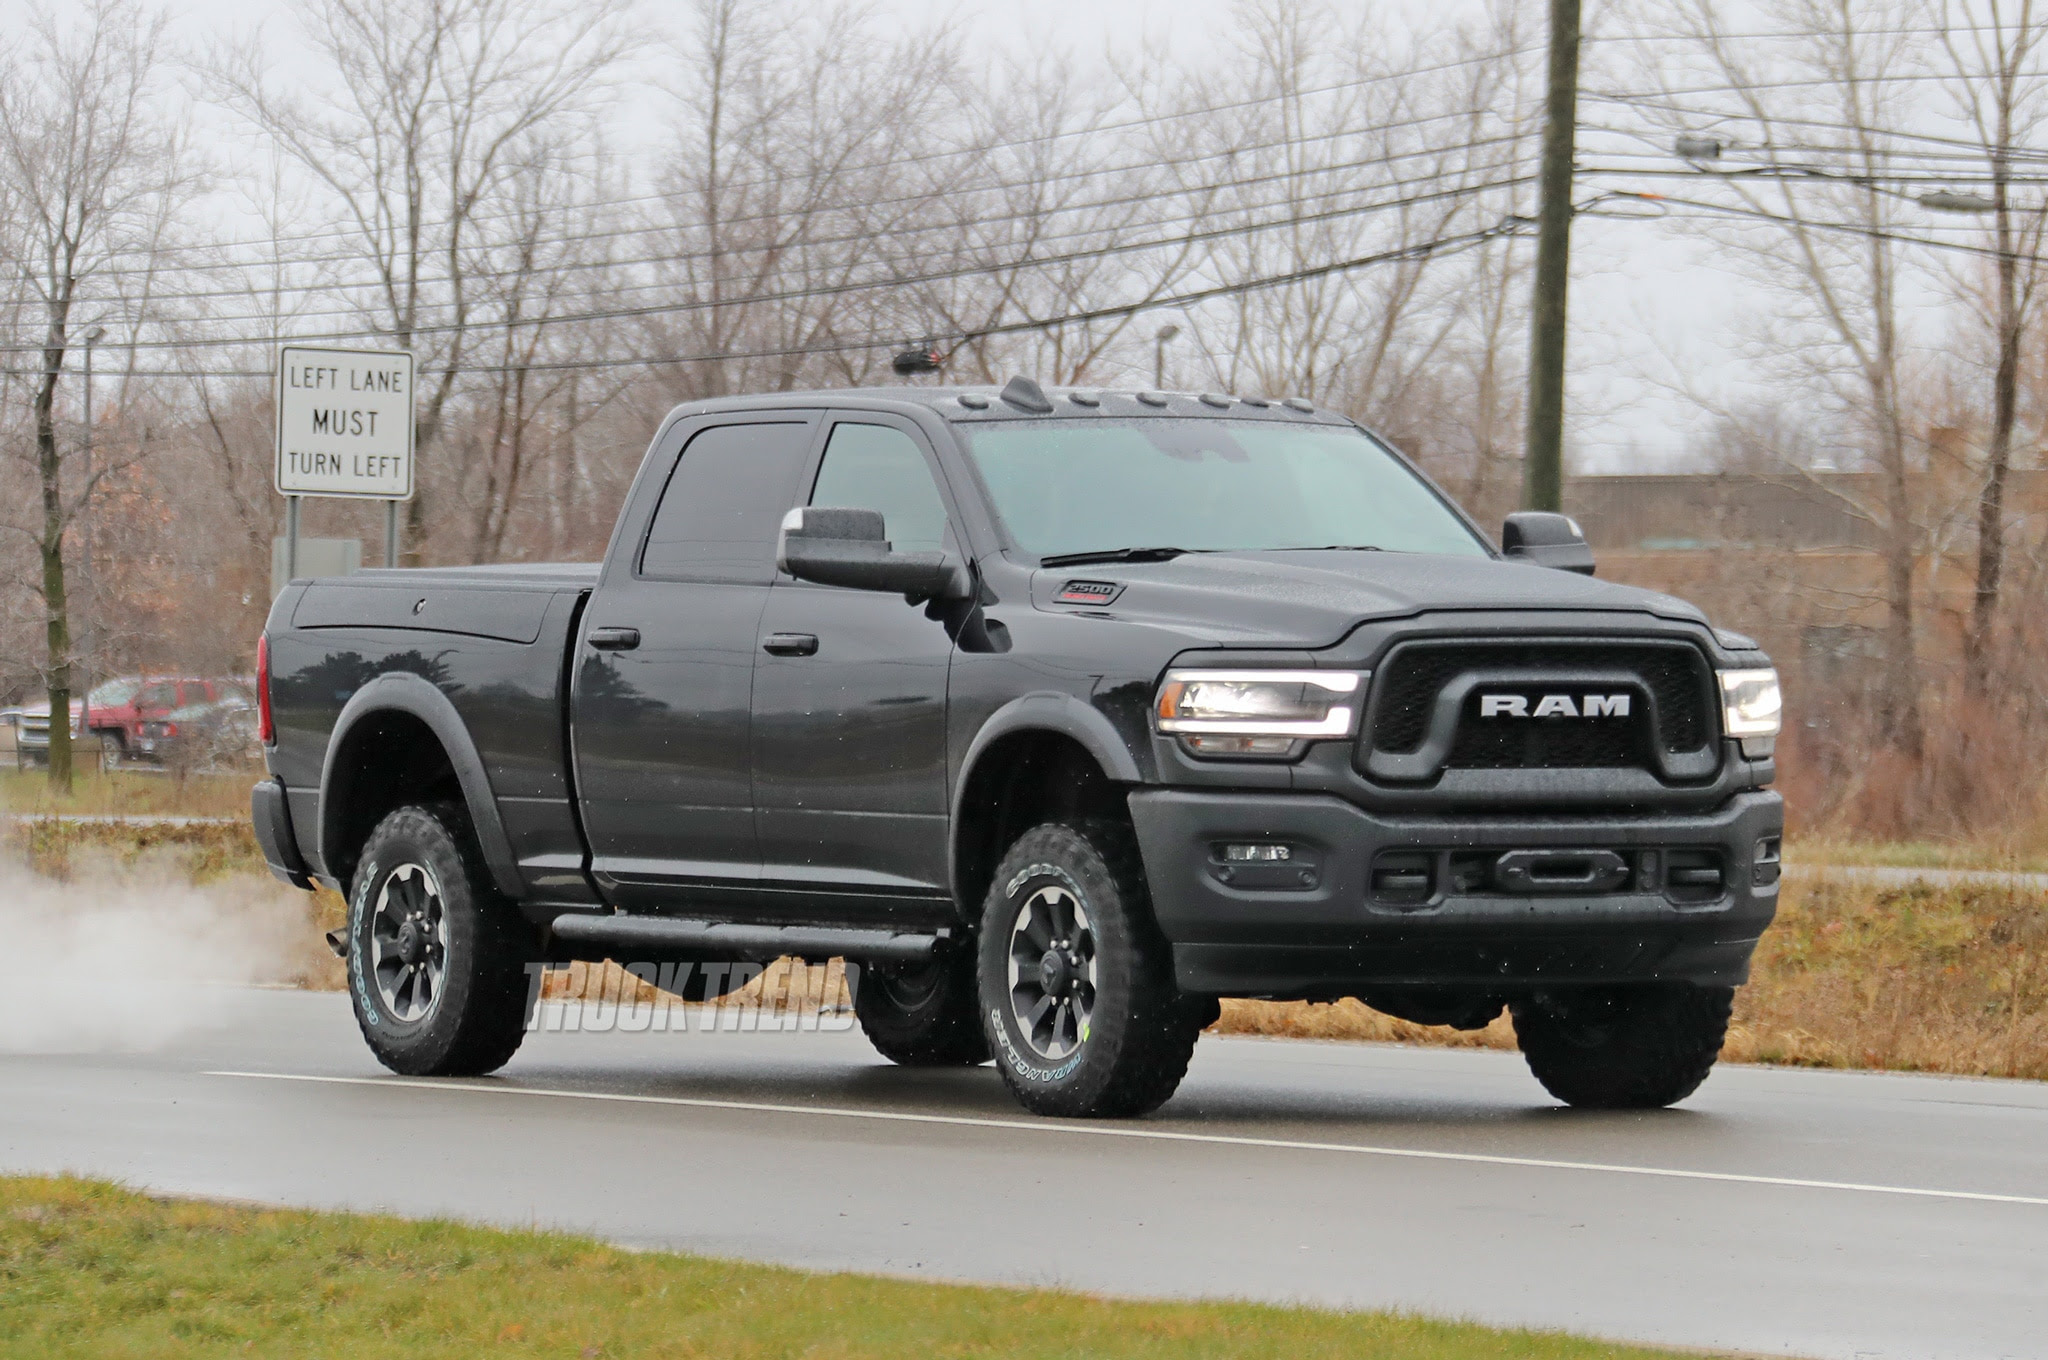 2020 Dodge Ram 3500 Fully Loaded Supercars Gallery